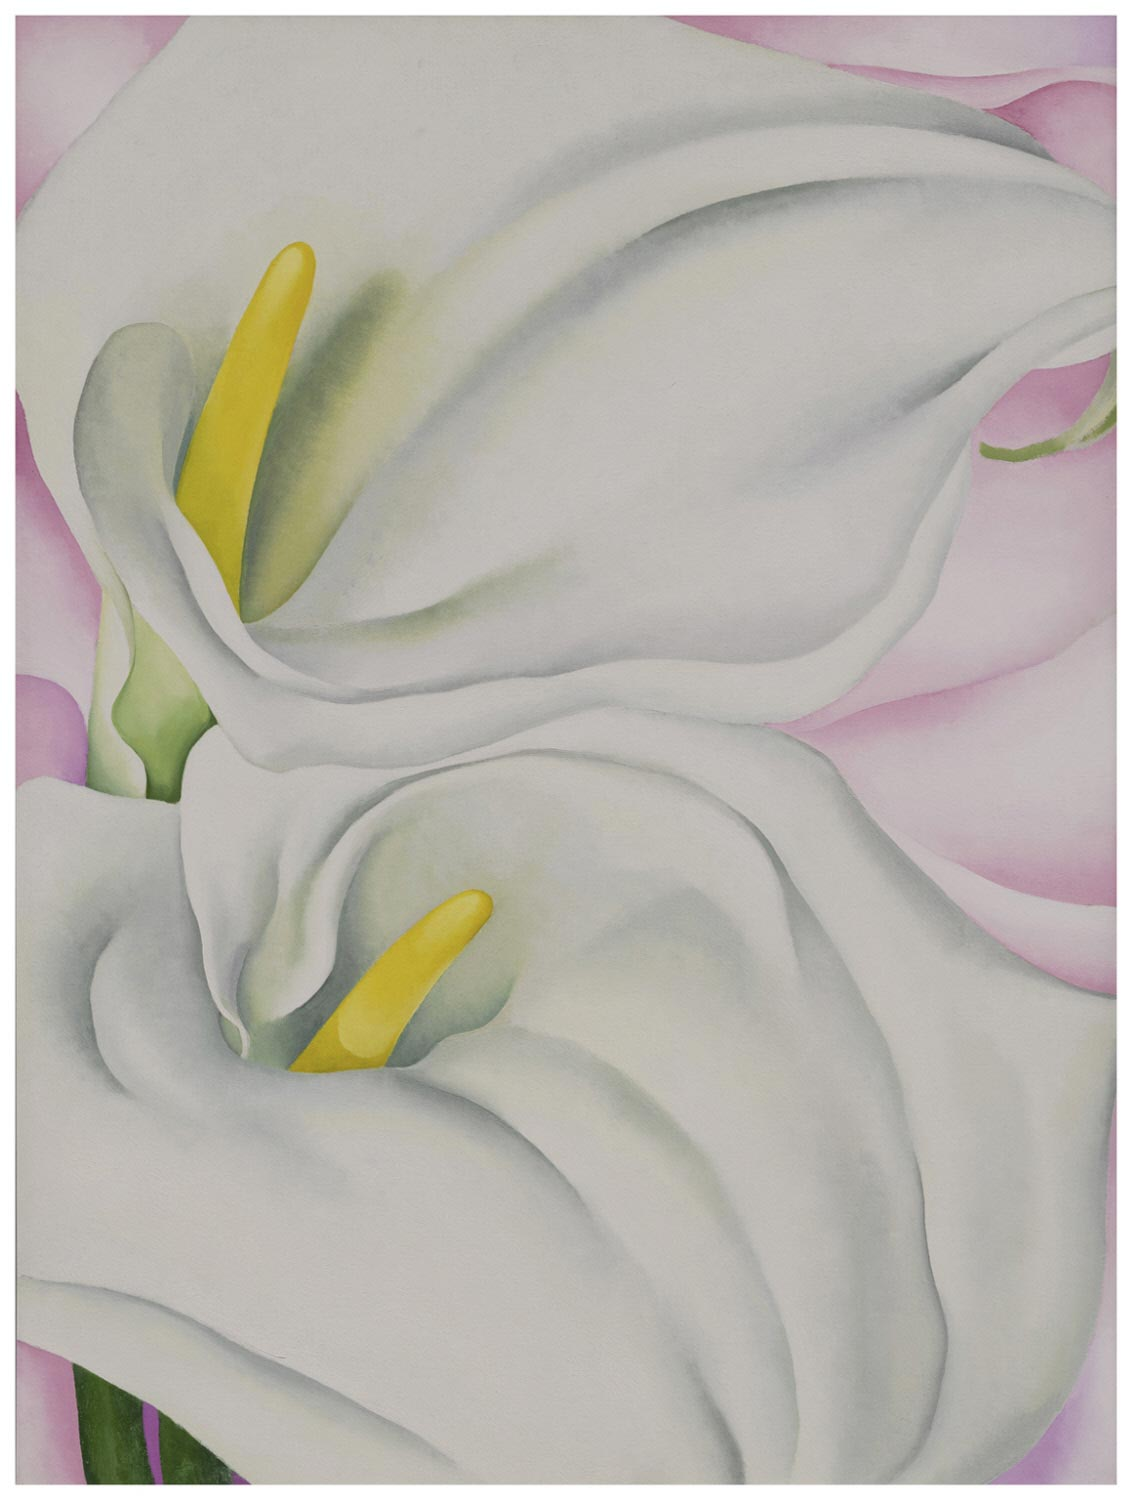 Georgia O'Keeffe, Two Calla Lilies on Pink  Philadephia Museum of Art, 1928